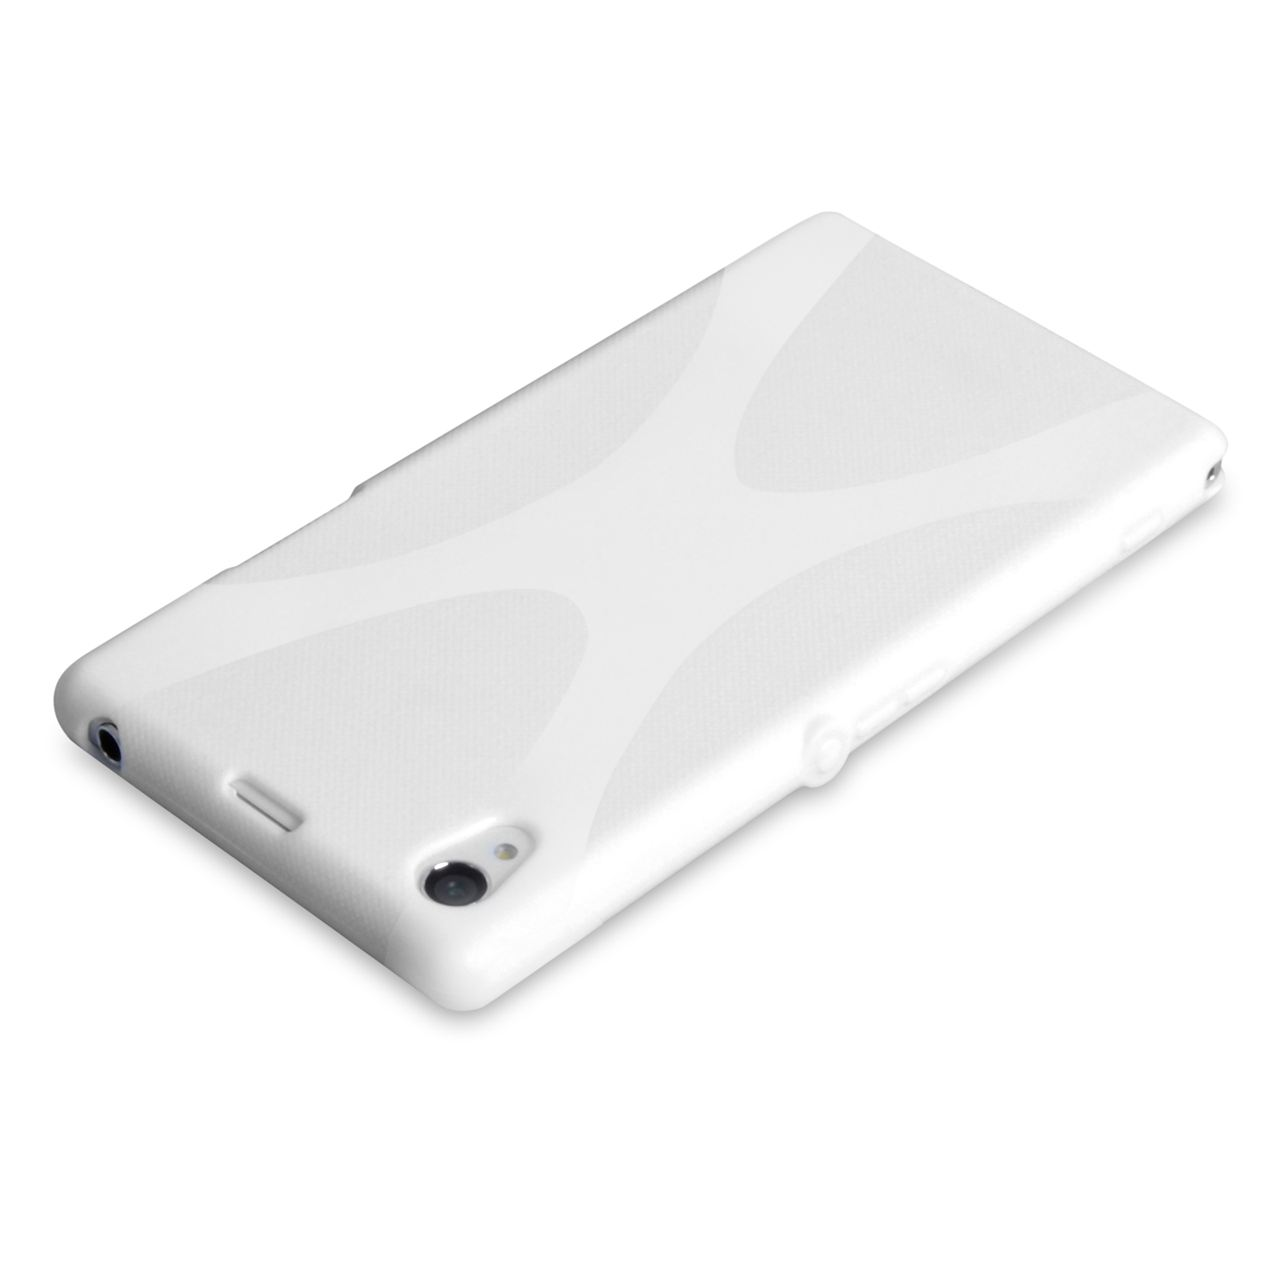 YouSave Accessories Sony Xperia Z1 X-Line Gel Case - White